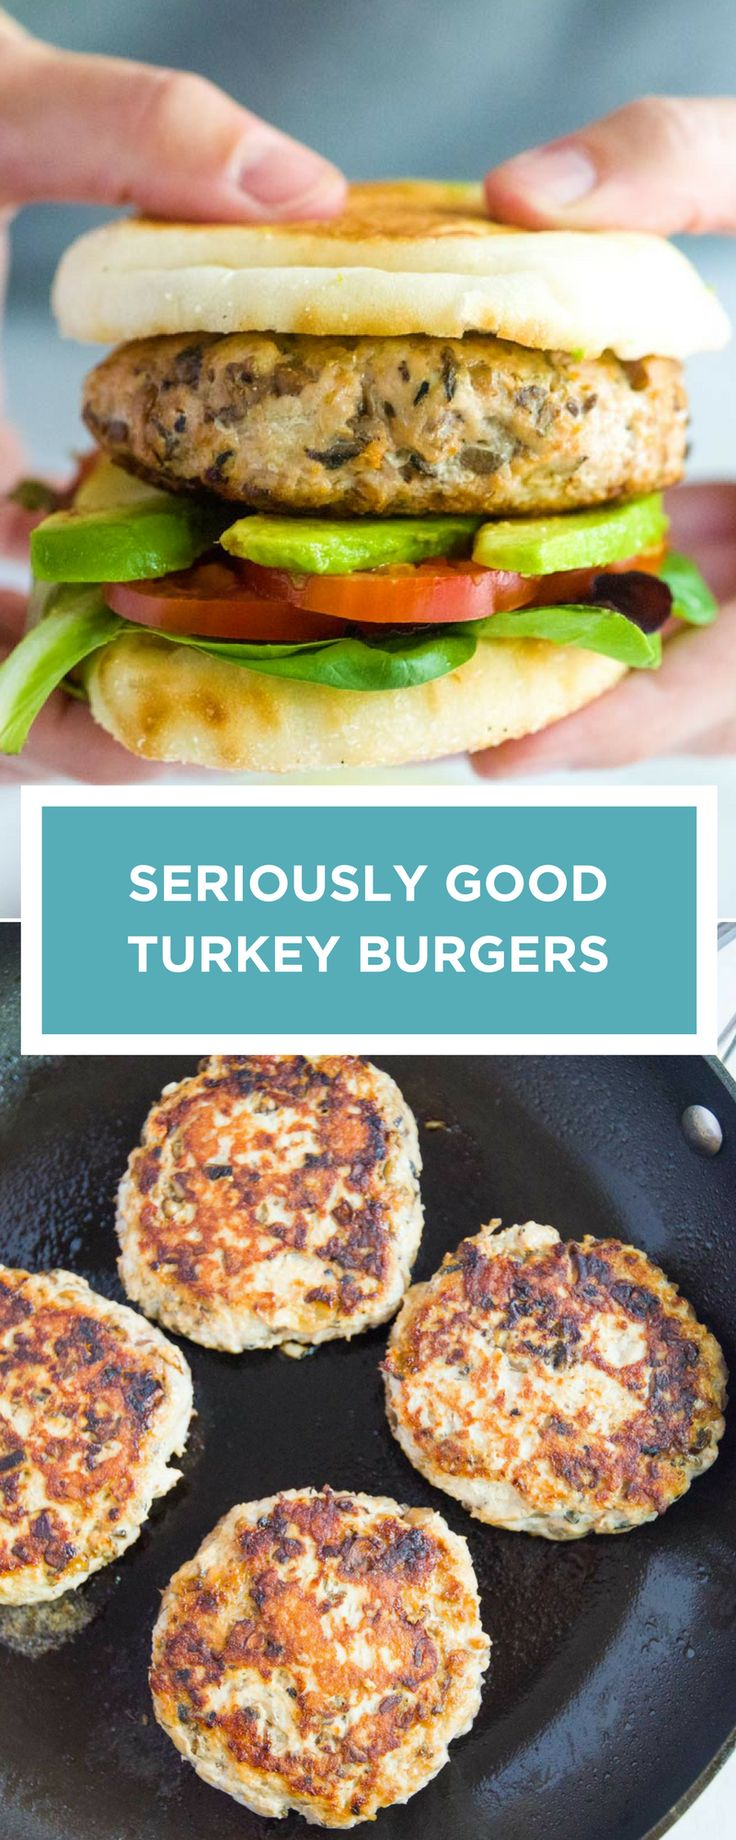 Seriously Good Turkey Burger Recipe! How to make tasty, healthy and juicy turkey burgers! Thanks to our secret ingredient, these burgers are loaded with umami and won't dry out.